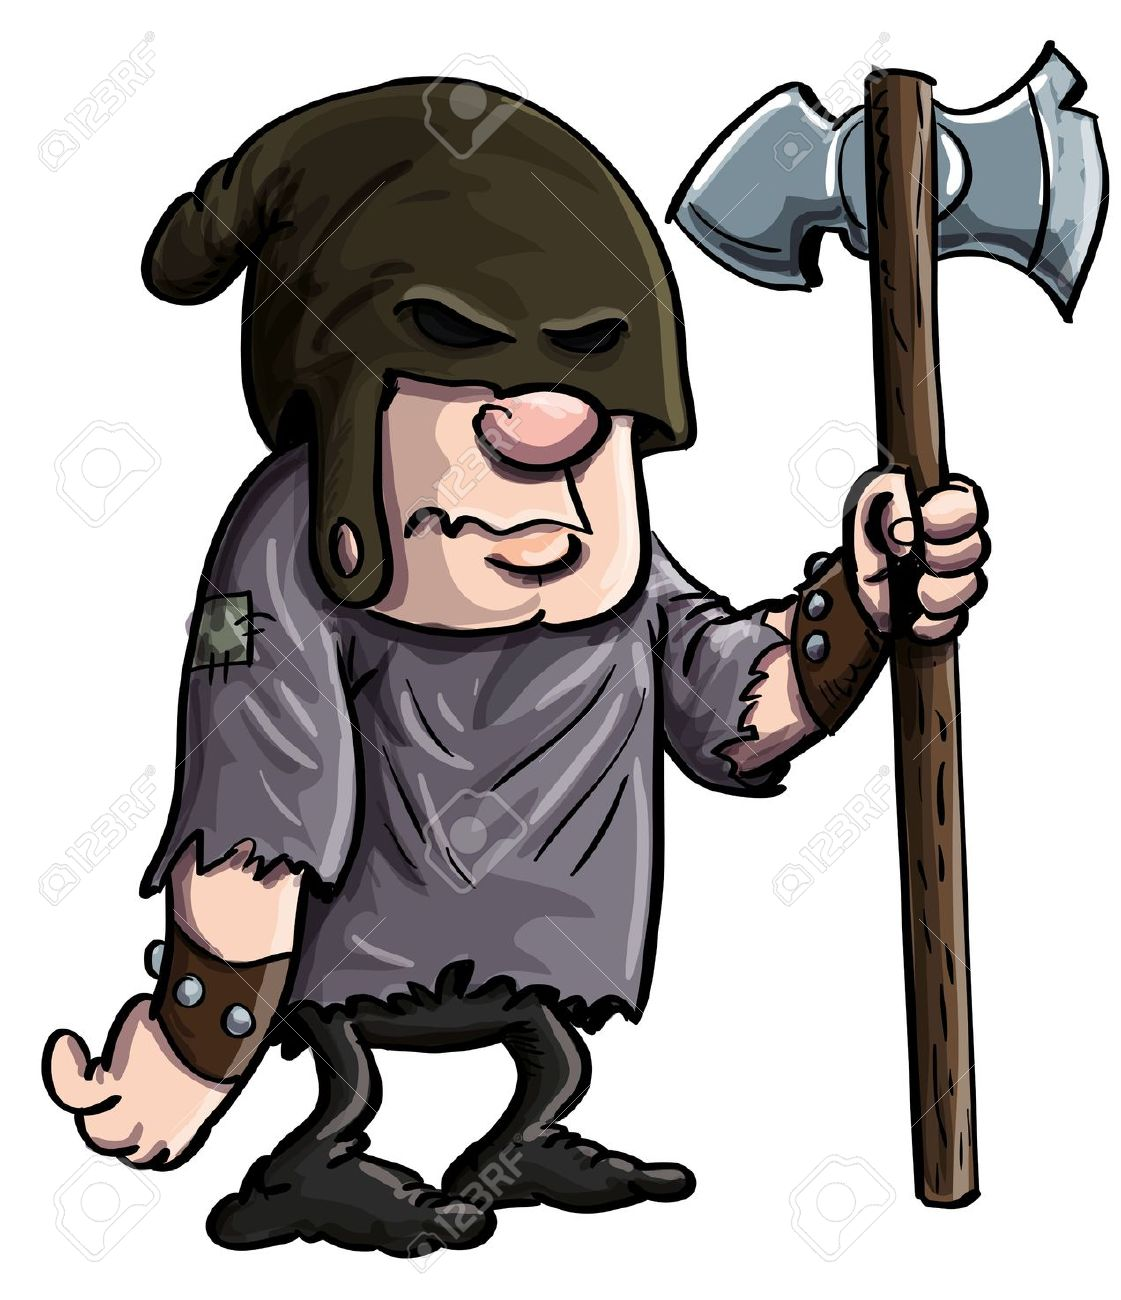 322 Executioner Stock Vector Illustration And Royalty Free.